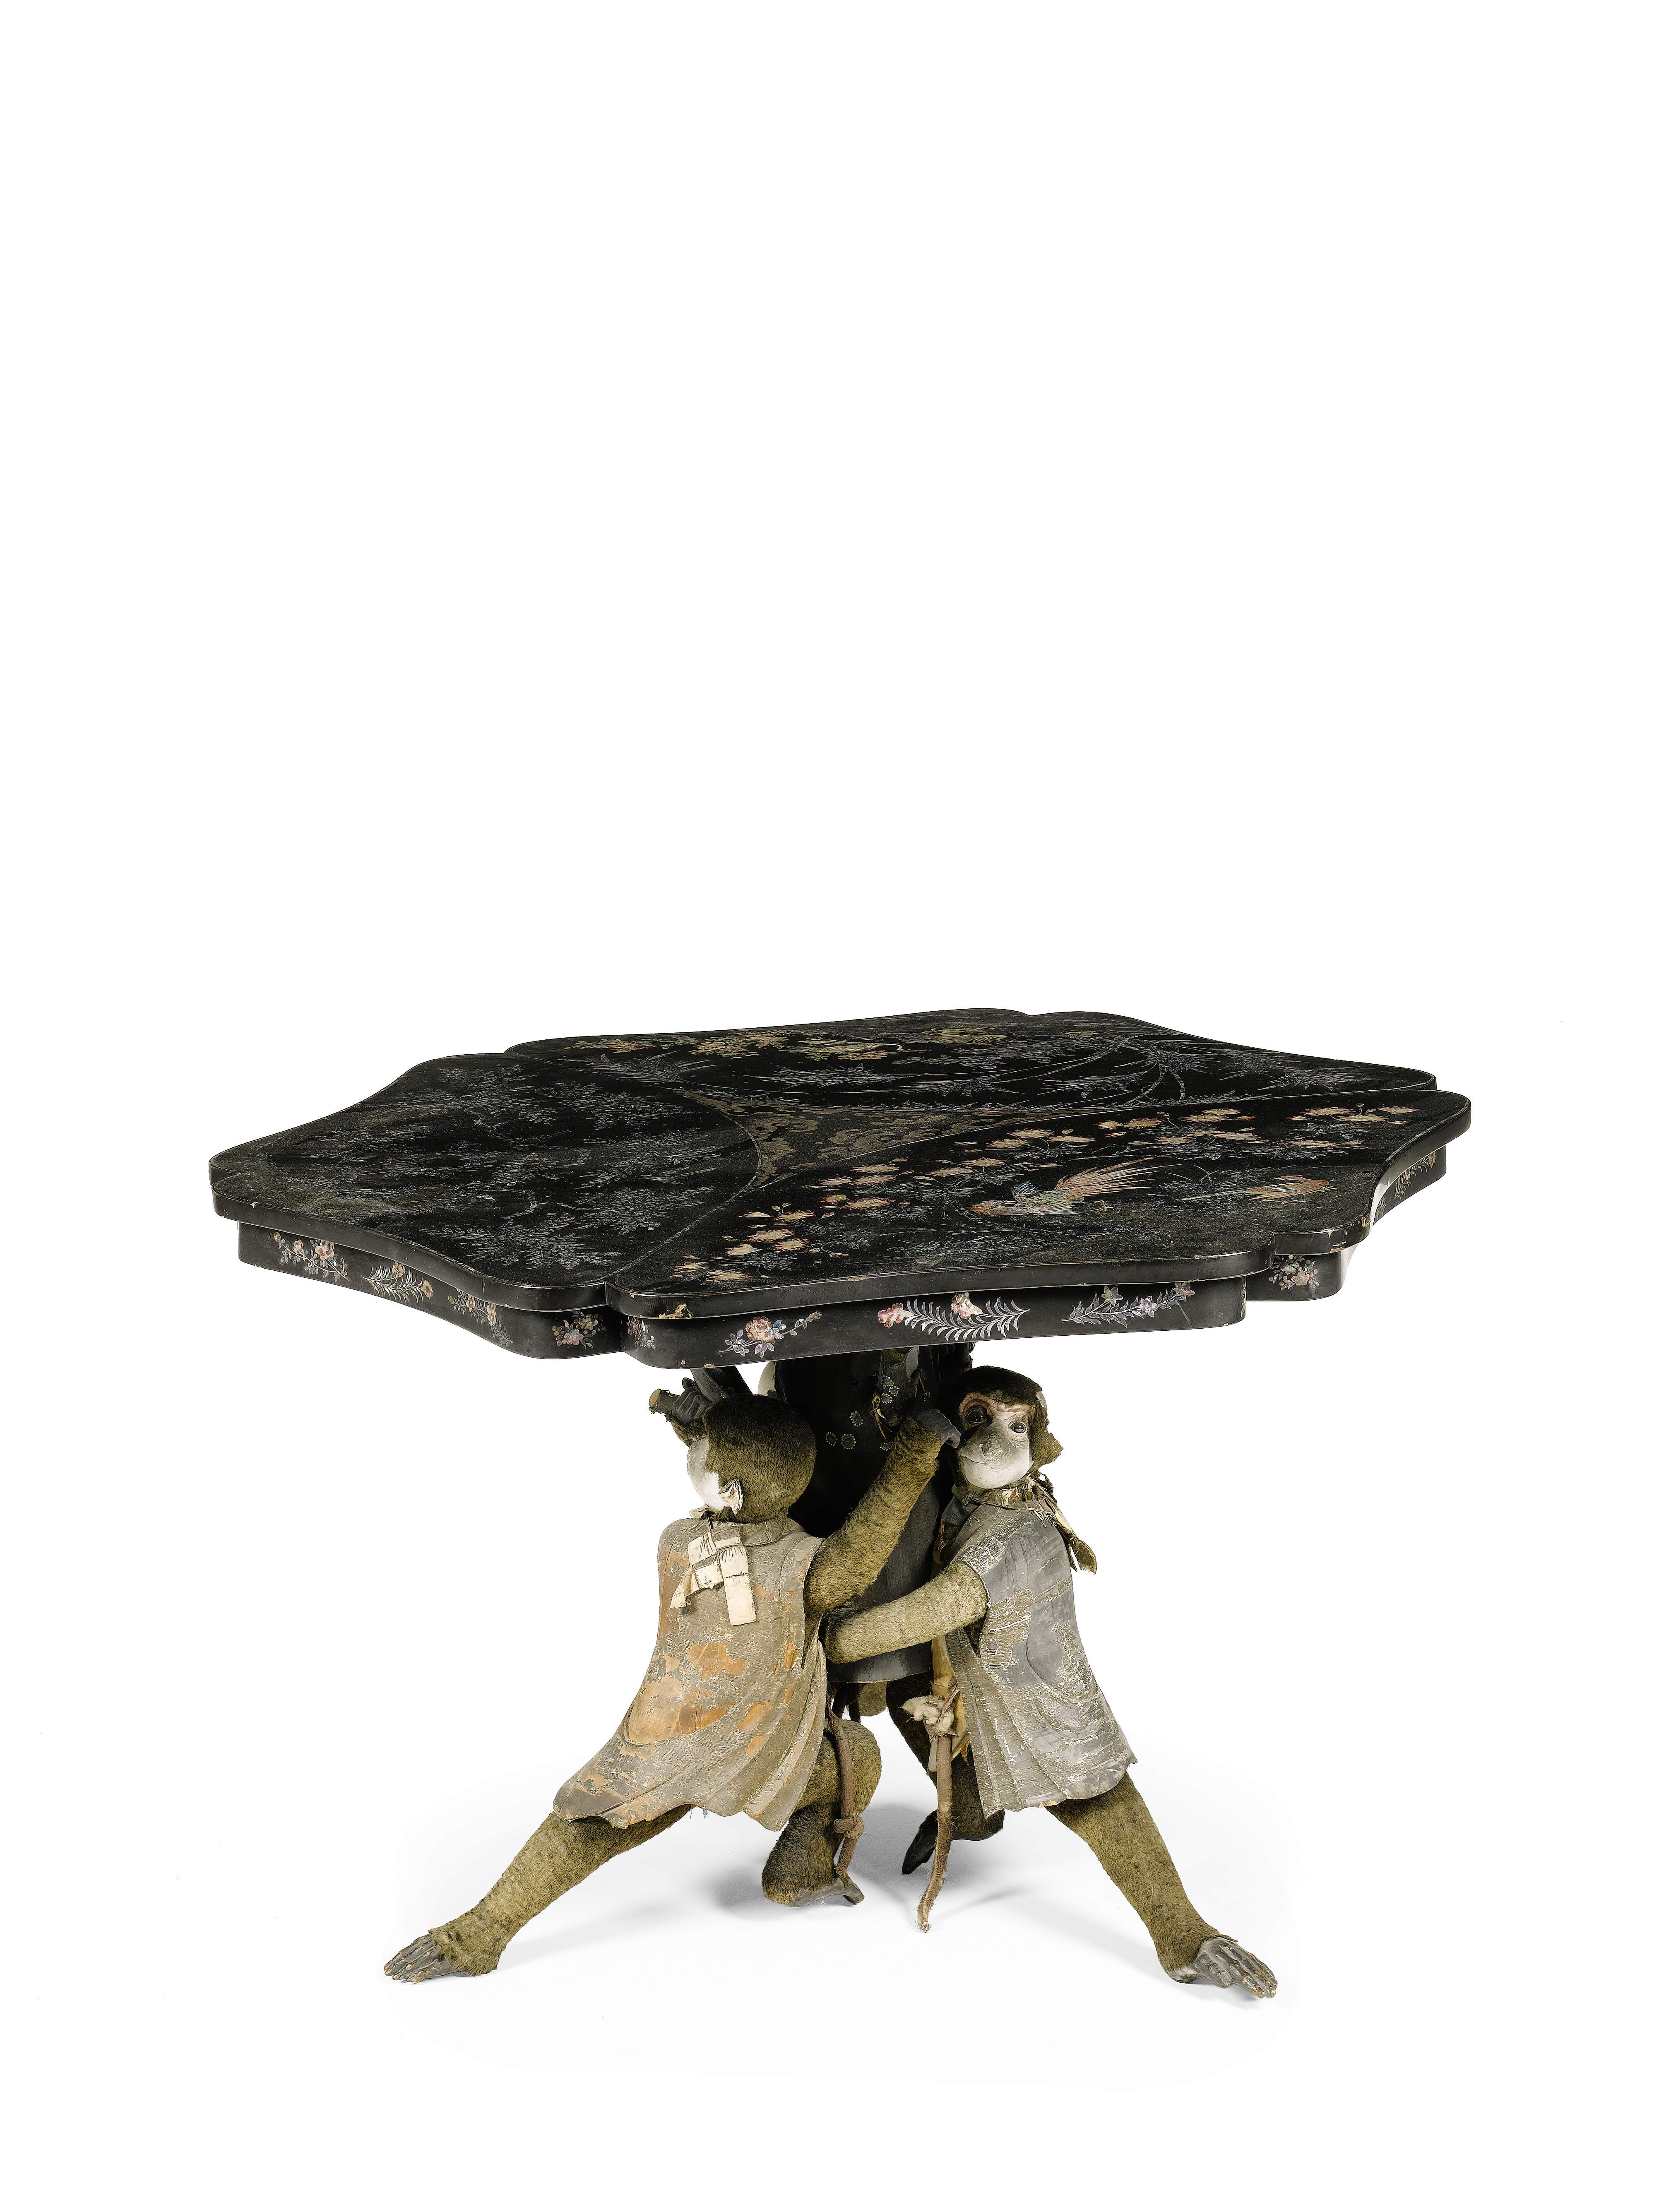 Trend Spotting at The International Fine Art And Antique  : monkey table chatsworth1 from www.decorartsnow.com size 4008 x 5344 jpeg 1144kB